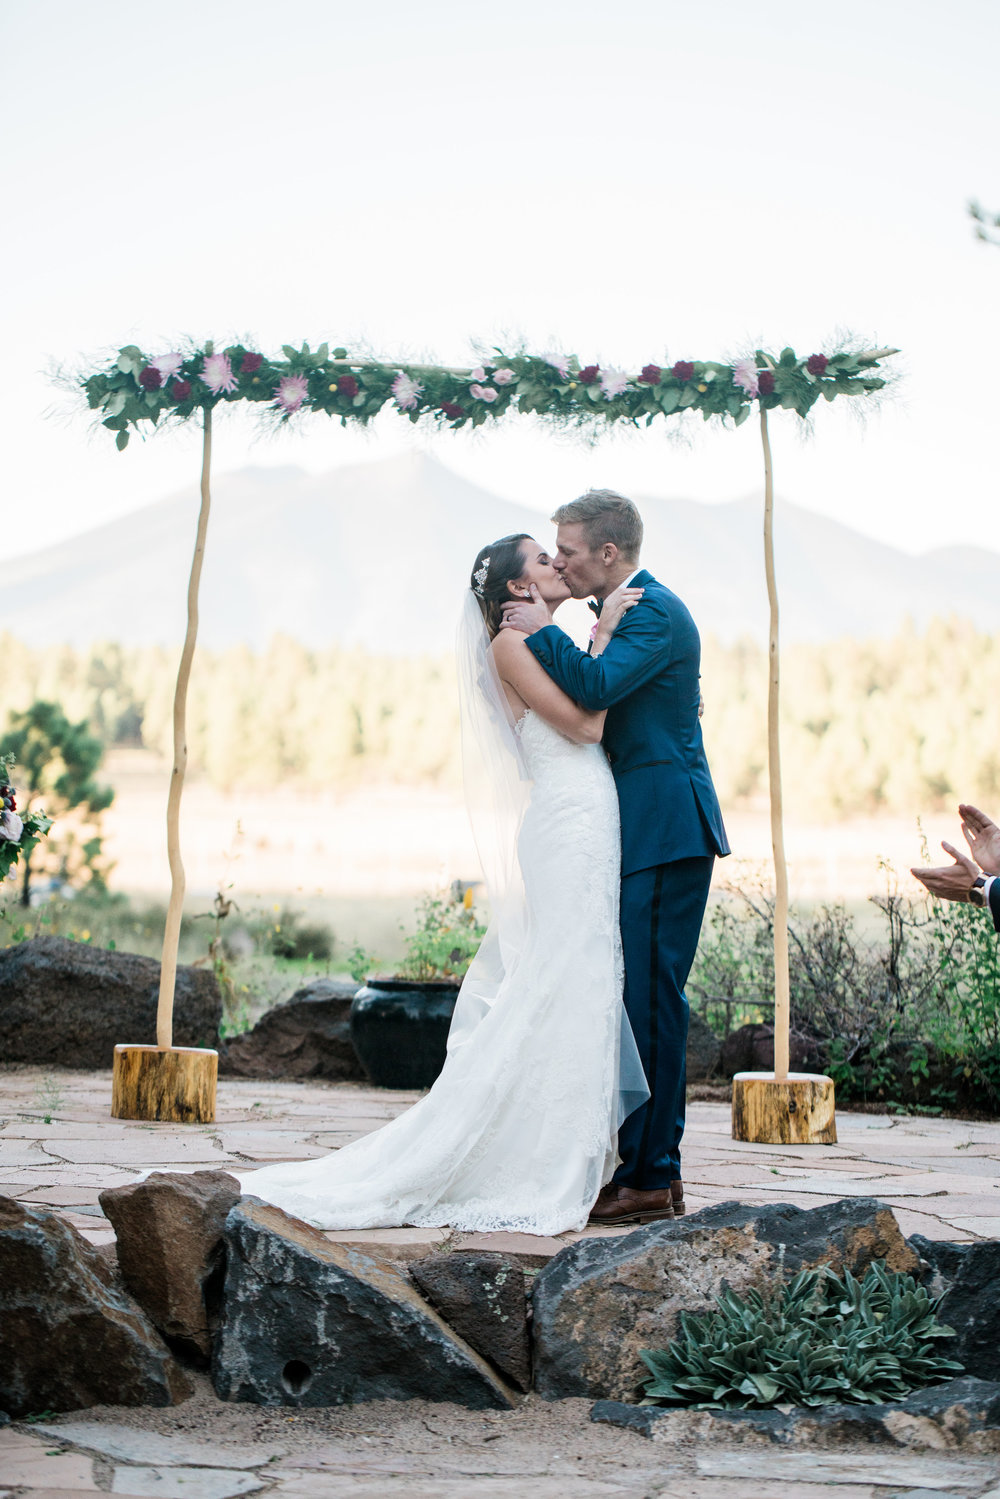 Flagstaff Forest Wedding - Ceremony Arch with Garland